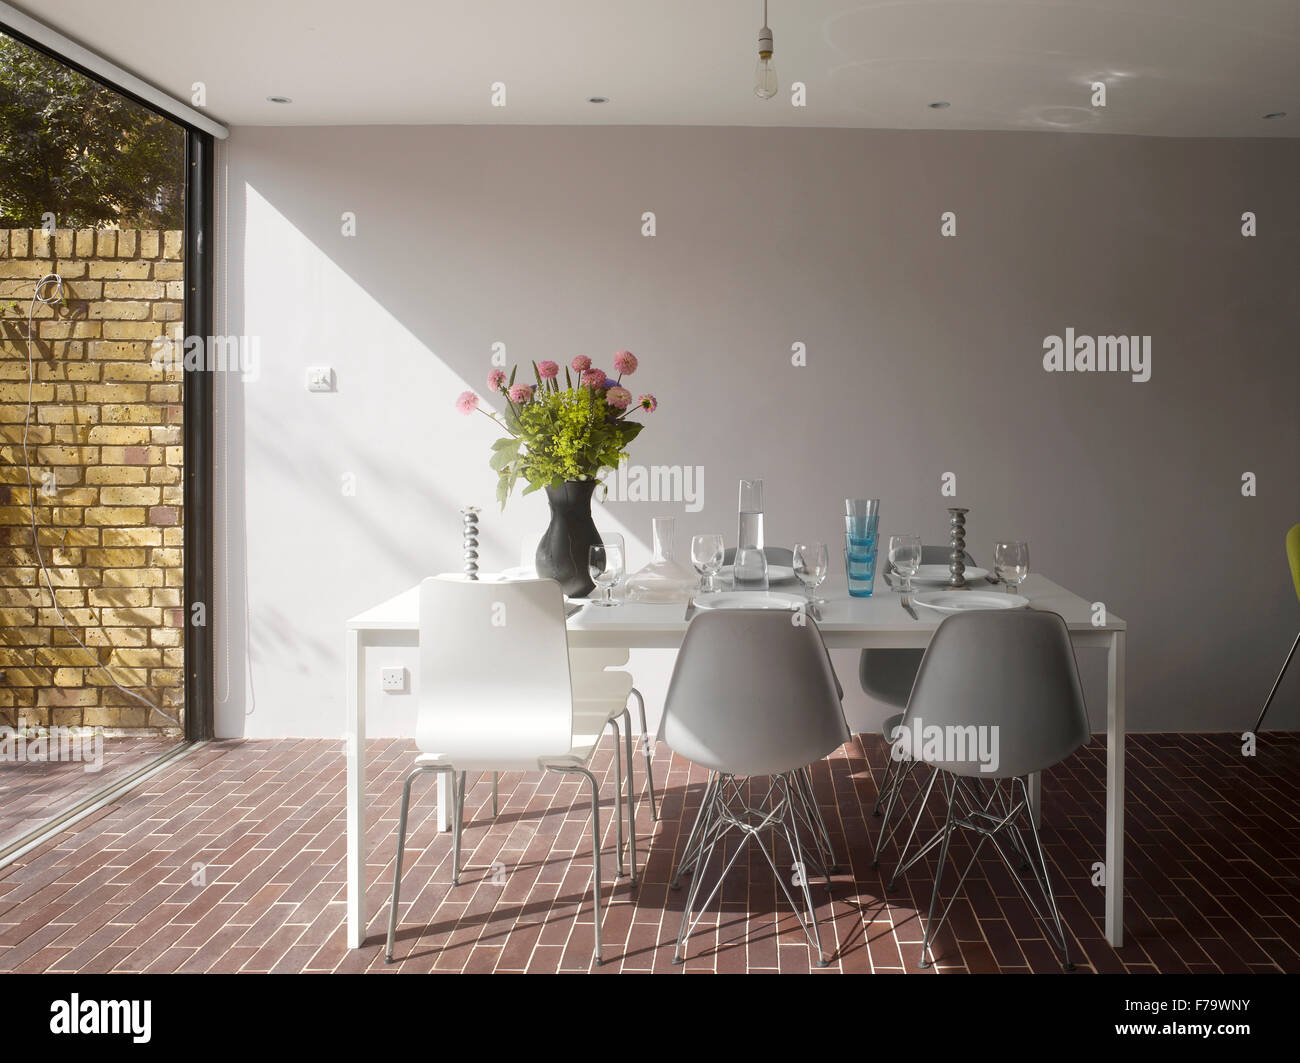 Dining Table  in refurbished 1960s social housing, Vauxhall, London, England, UK - Stock Image